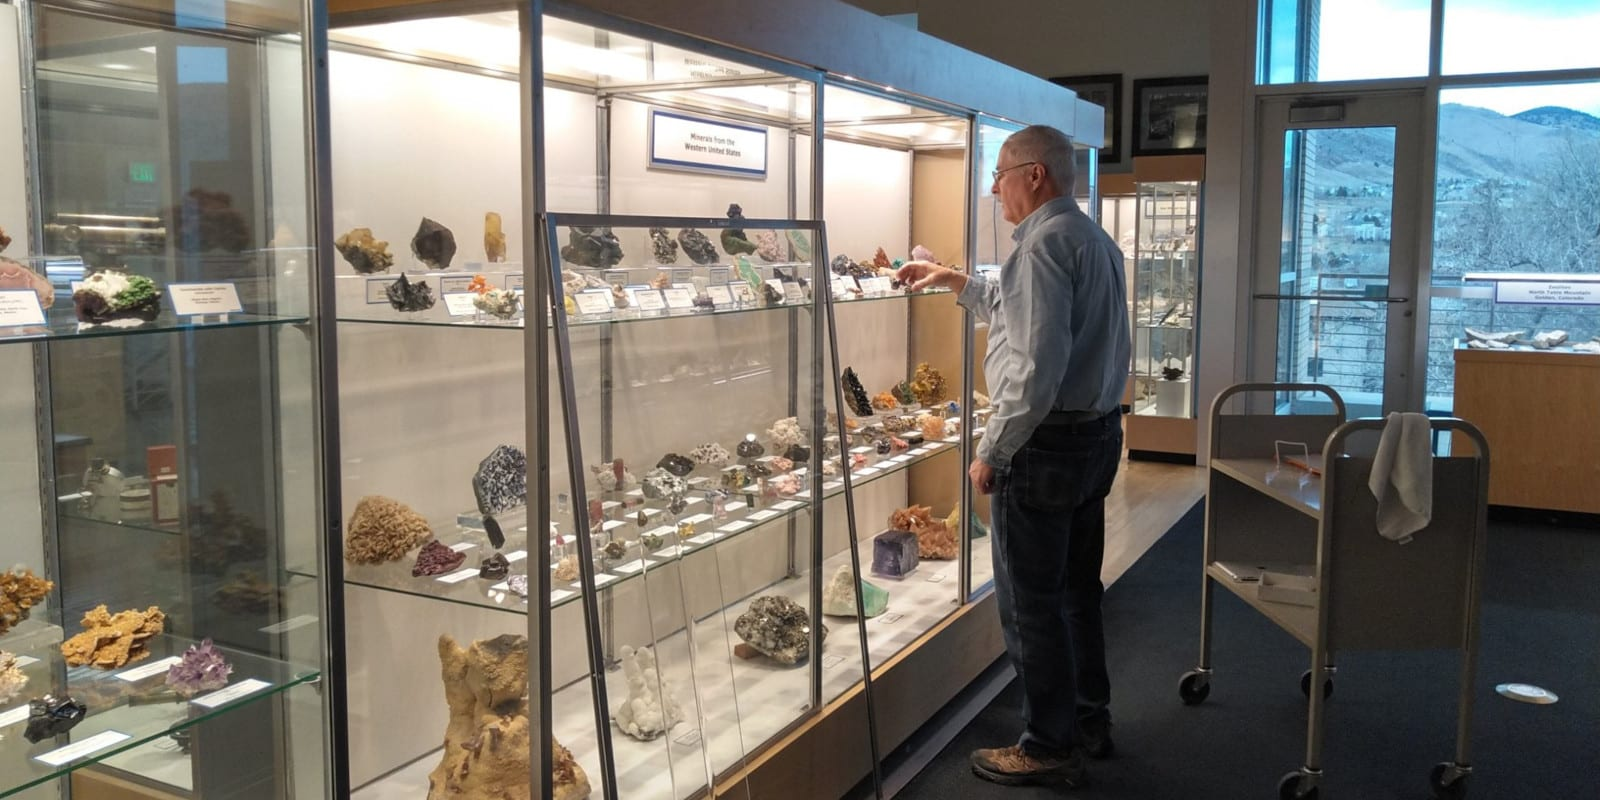 Image of a man installing an exhibit at the Mines Museum in Golden, Colorado